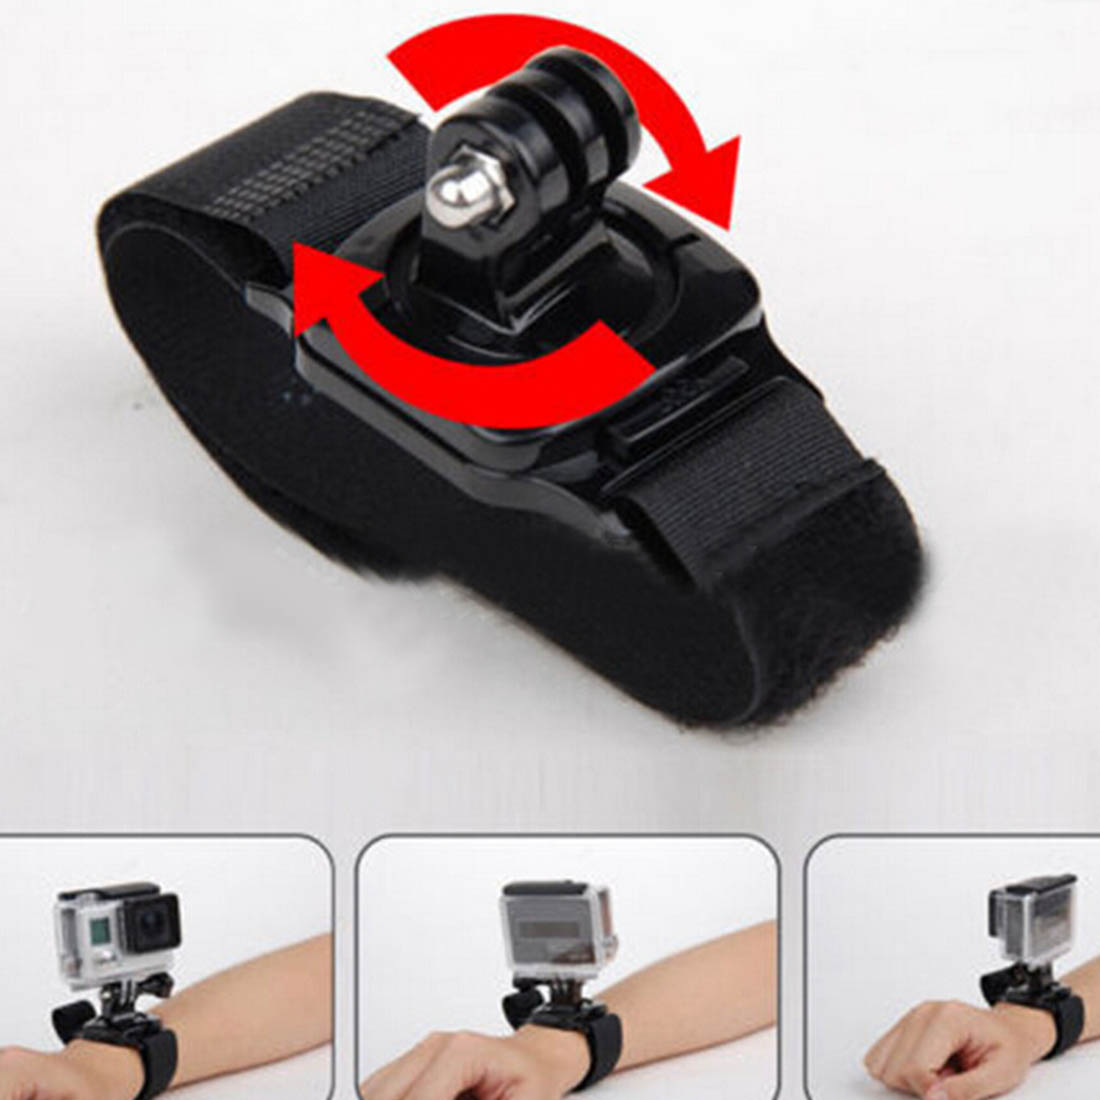 Centechia Glove Wrist Band 360 Degree Swivel Rotation Hand Strap Belt Tripod Mount For GoPro Hero 4/3+ For Go Pro SJCAM SJ4000